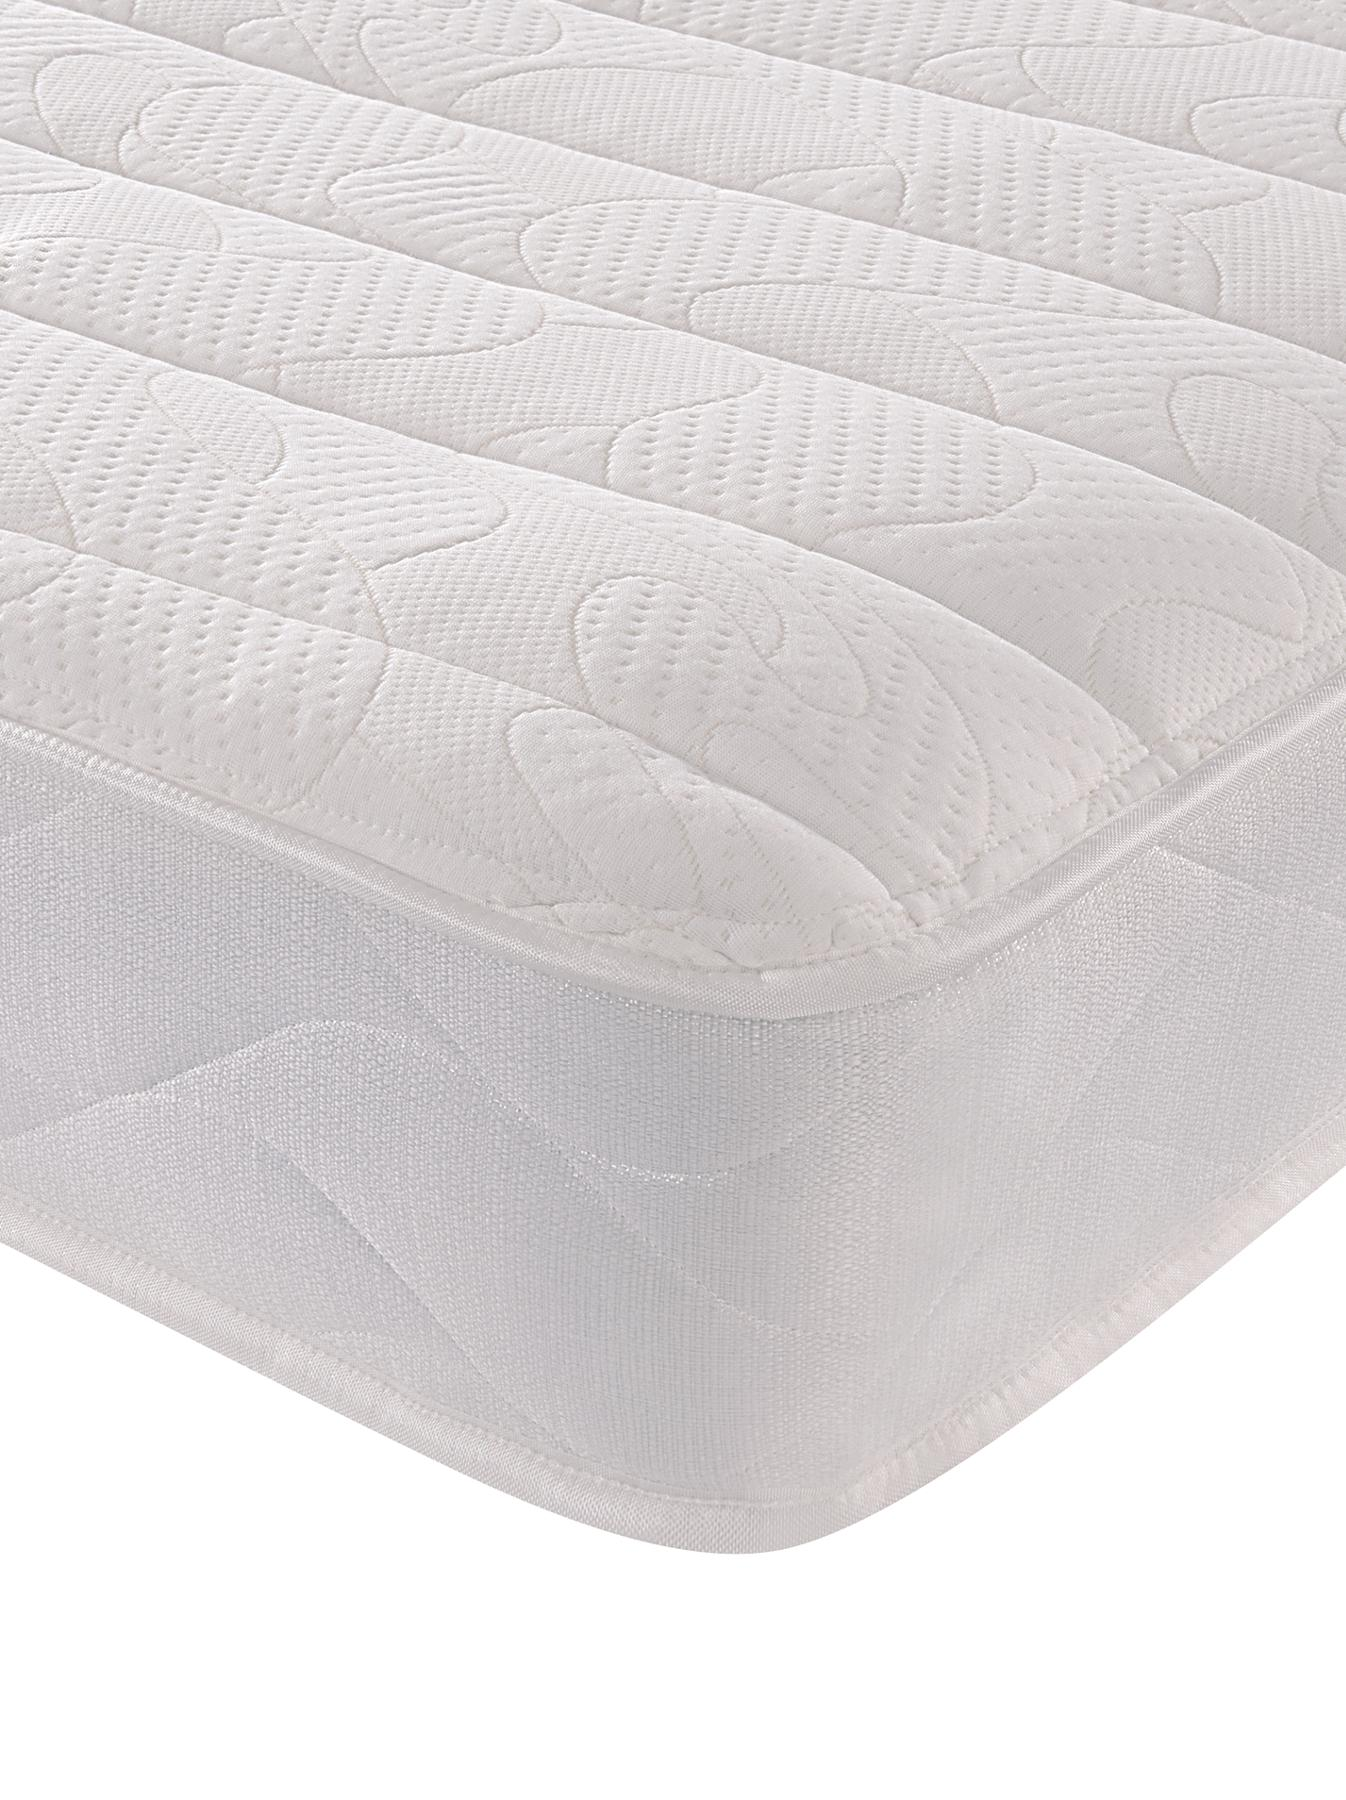 Jemima Micro Quilted Memory Mattress